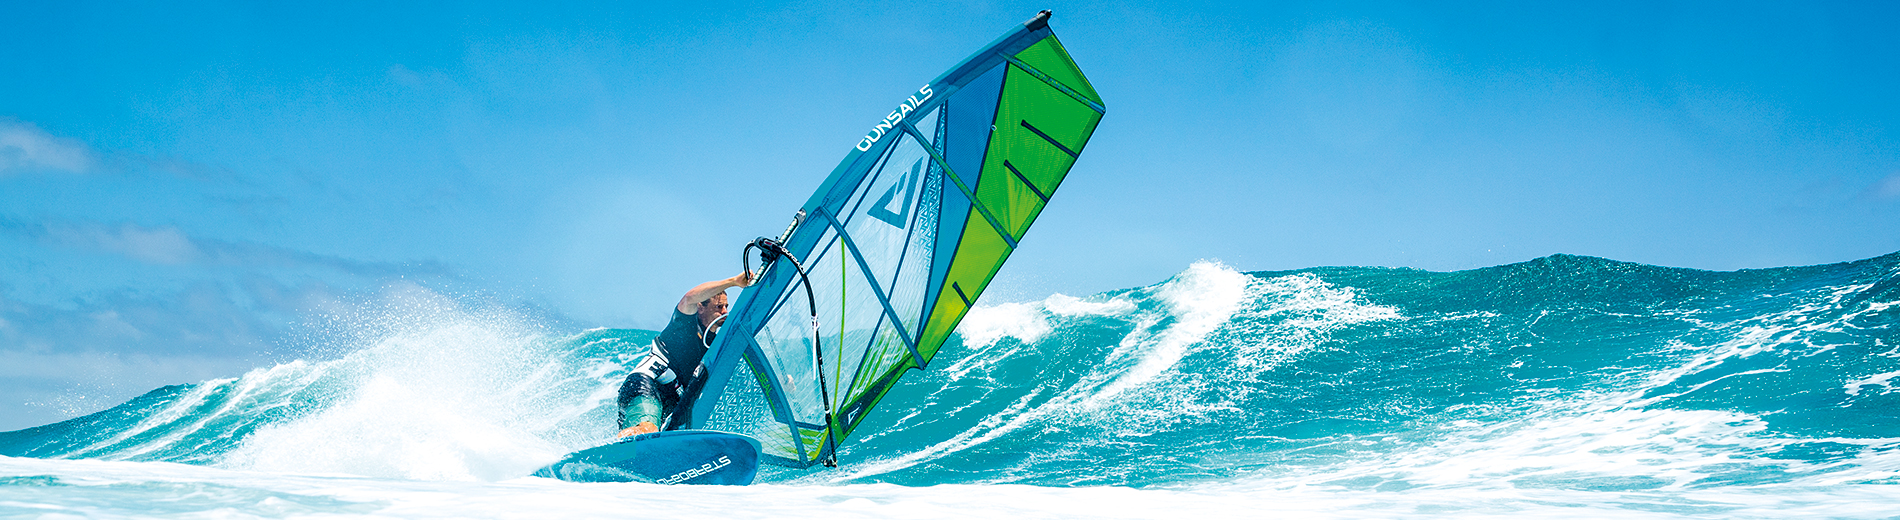 GUNSAILS | Florian Jung - PWA Worldtour Rider, Wave Windsurfing